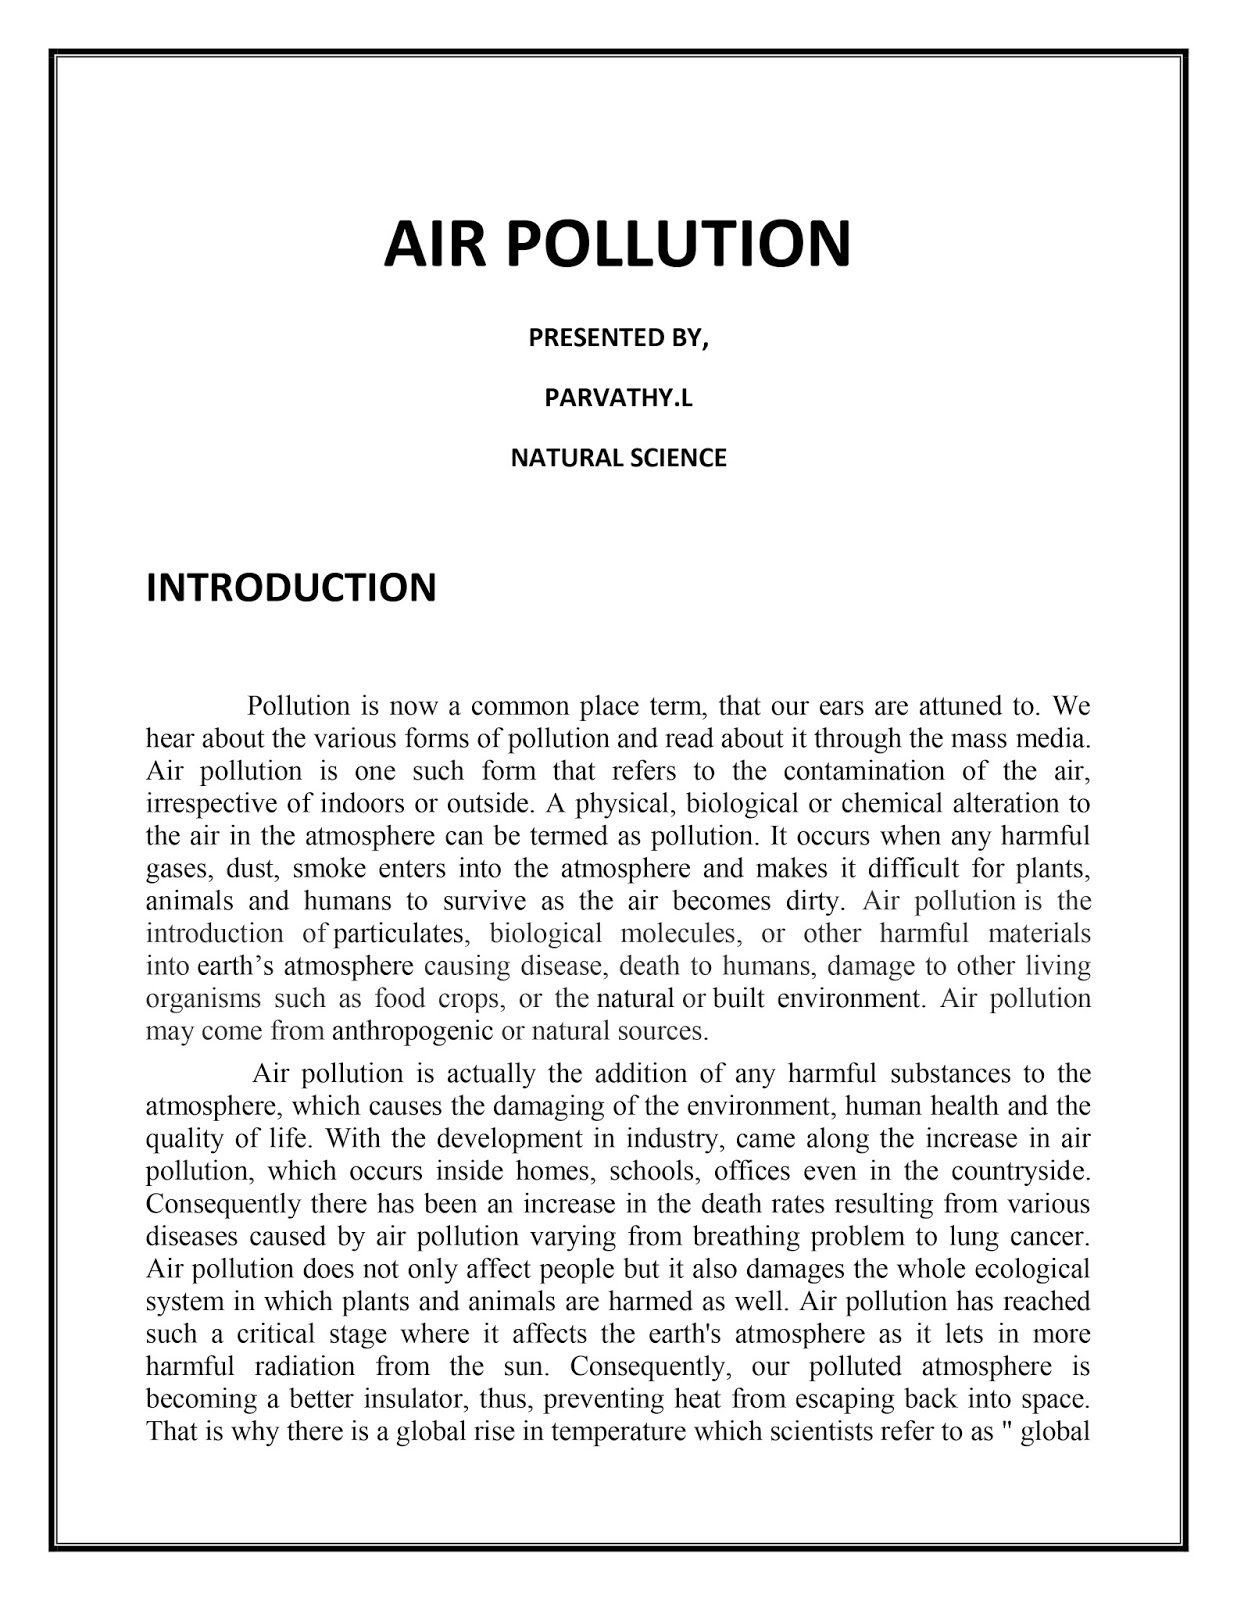 essay on air pollution with pictures Essay on the pollution  air pollution is the most dangerous form of pollution land and water pollution have worsened the situation  short essay on .